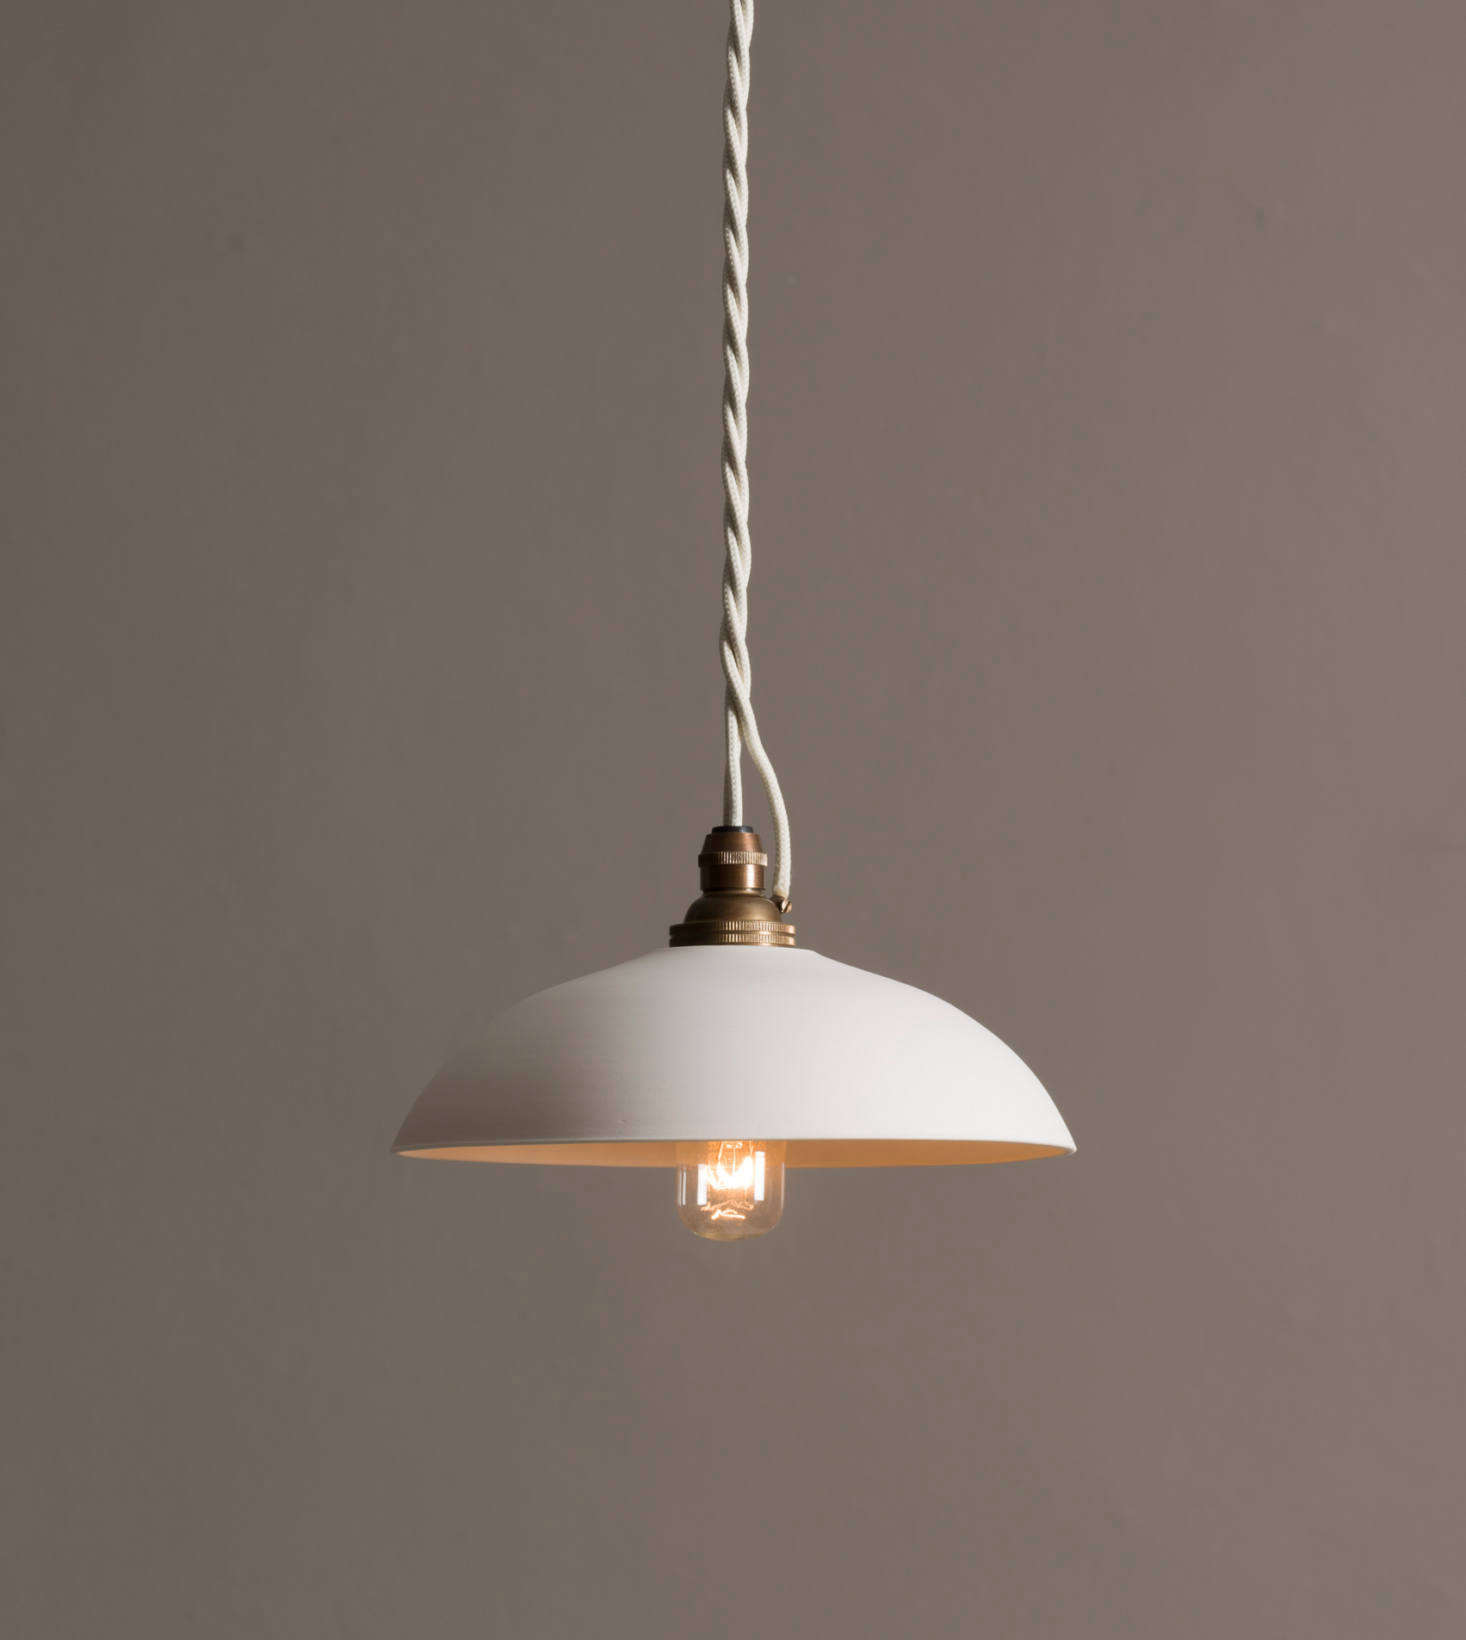 Diy Pendant Lights Australia New From Devol A Nyc Showroom And Porcelain Pendant Lights